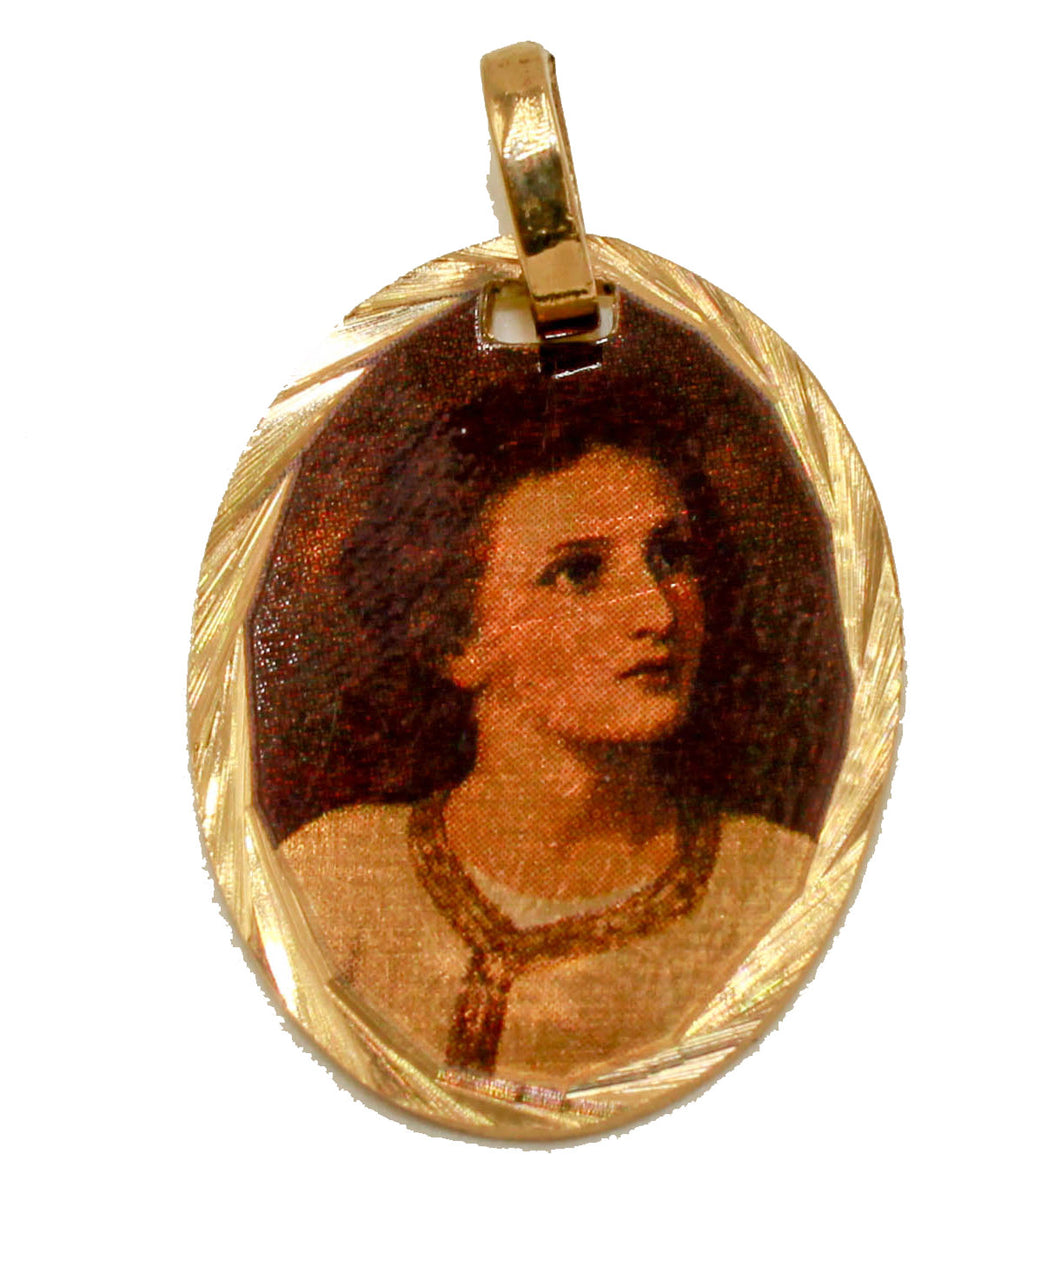 Jesus Joven Medalla - Young Jesus 14k Gold Plated Medal with 18 Inch Chain